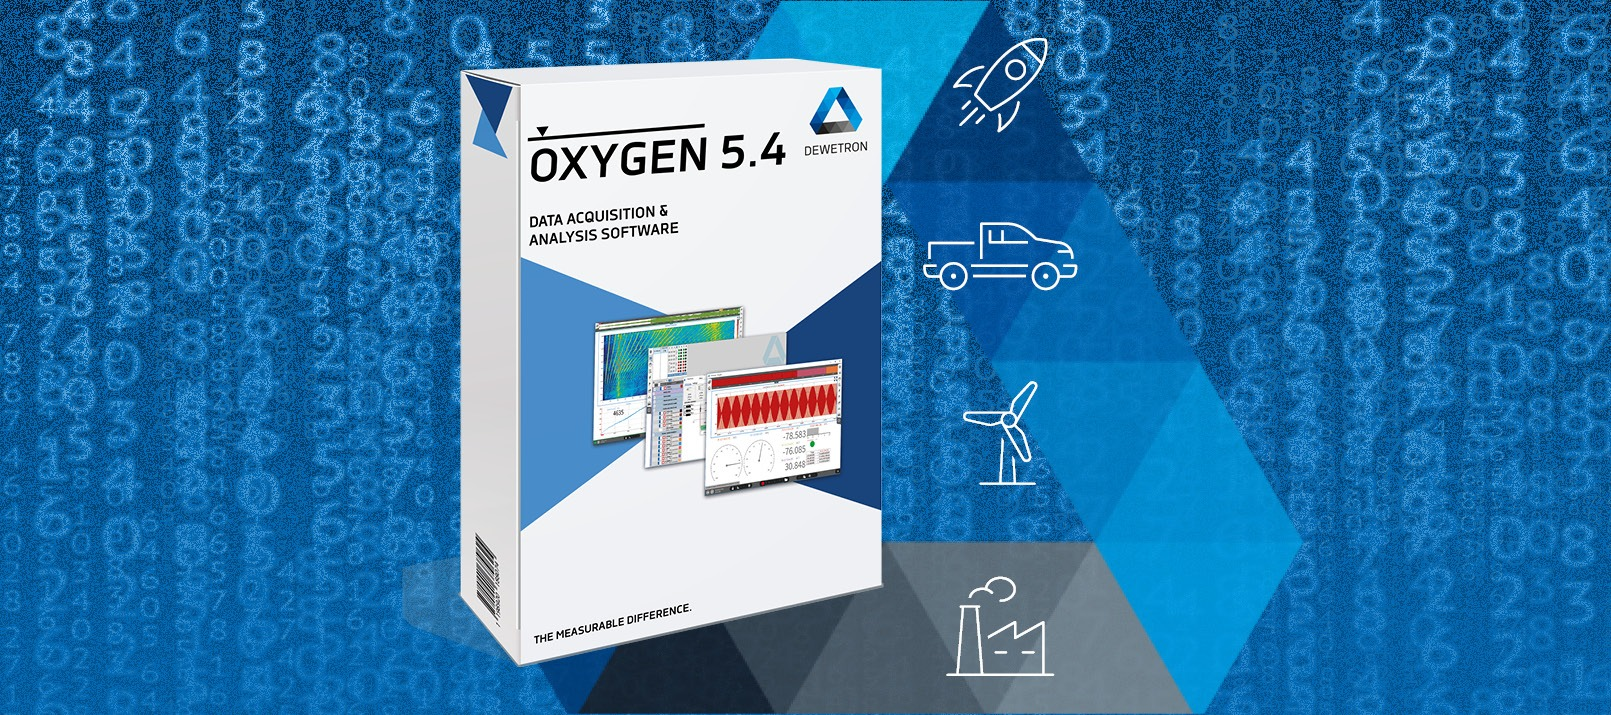 Banner with OXYGEN 5.4 Software Package